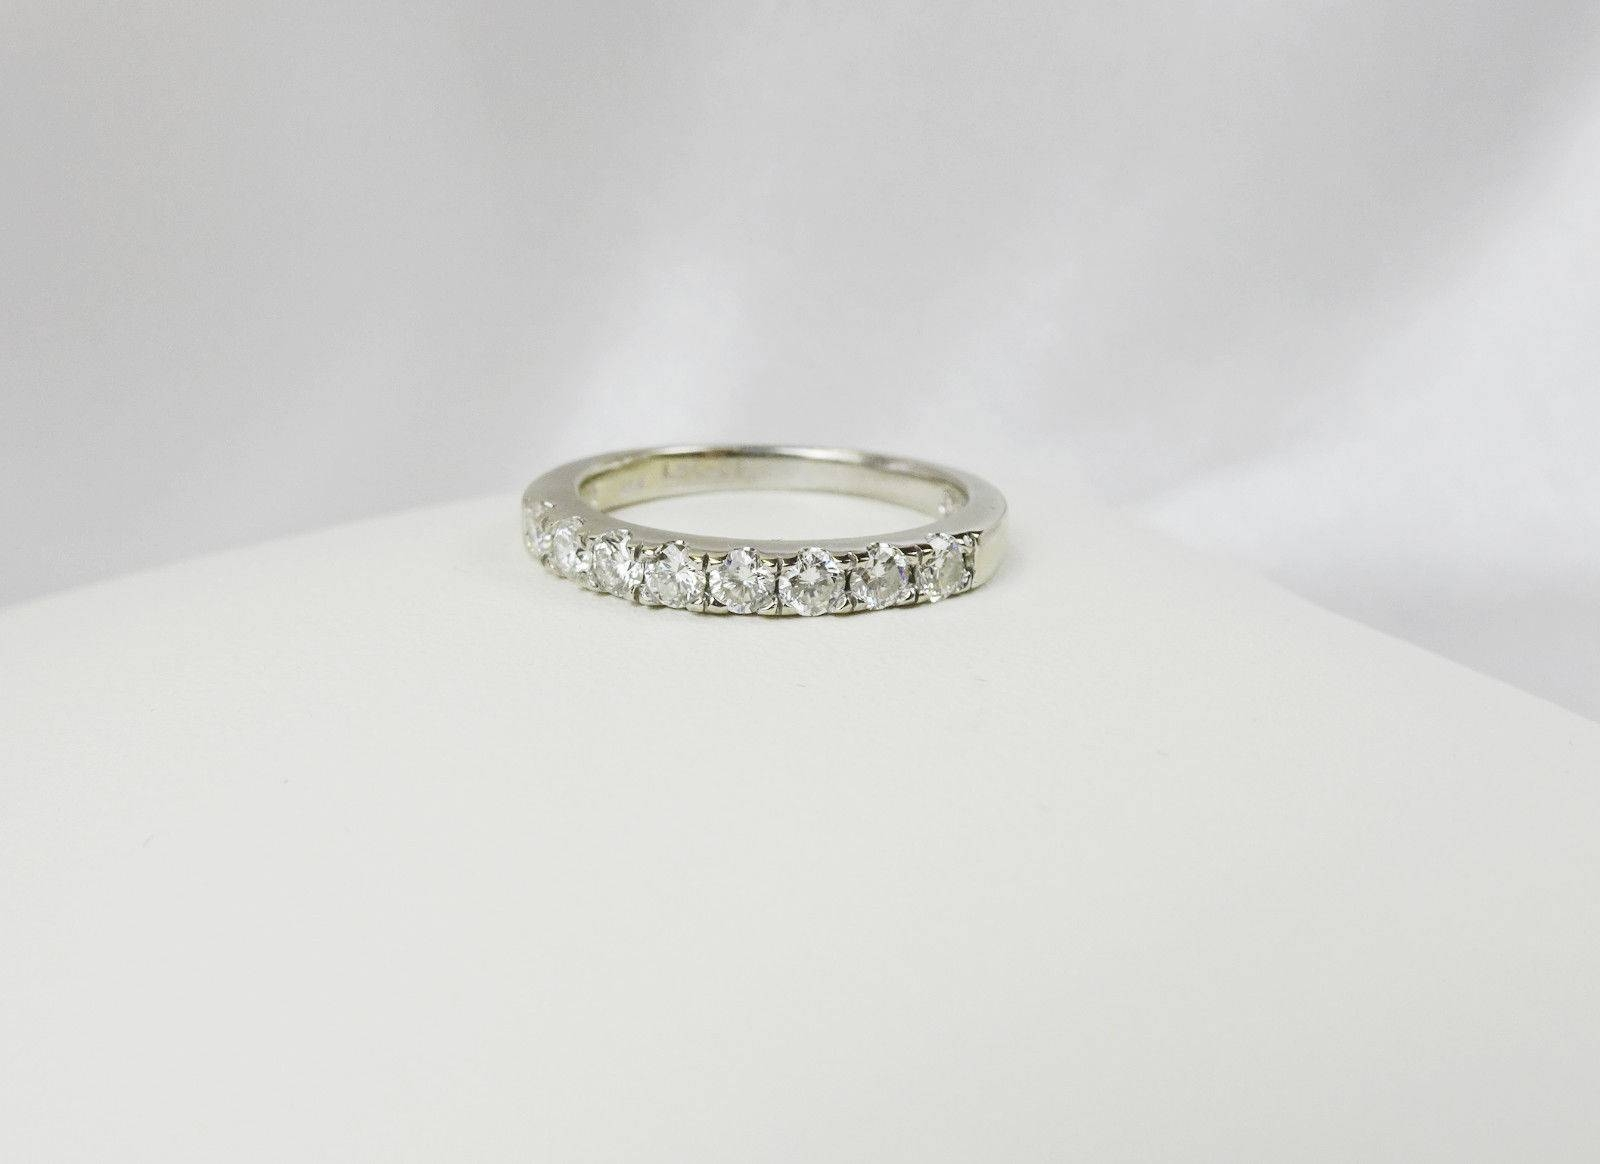 50Ctw The Leo Diamond Wedding Band 14K White Gold, From Kay With Leo Diamond Wedding Bands (View 1 of 15)